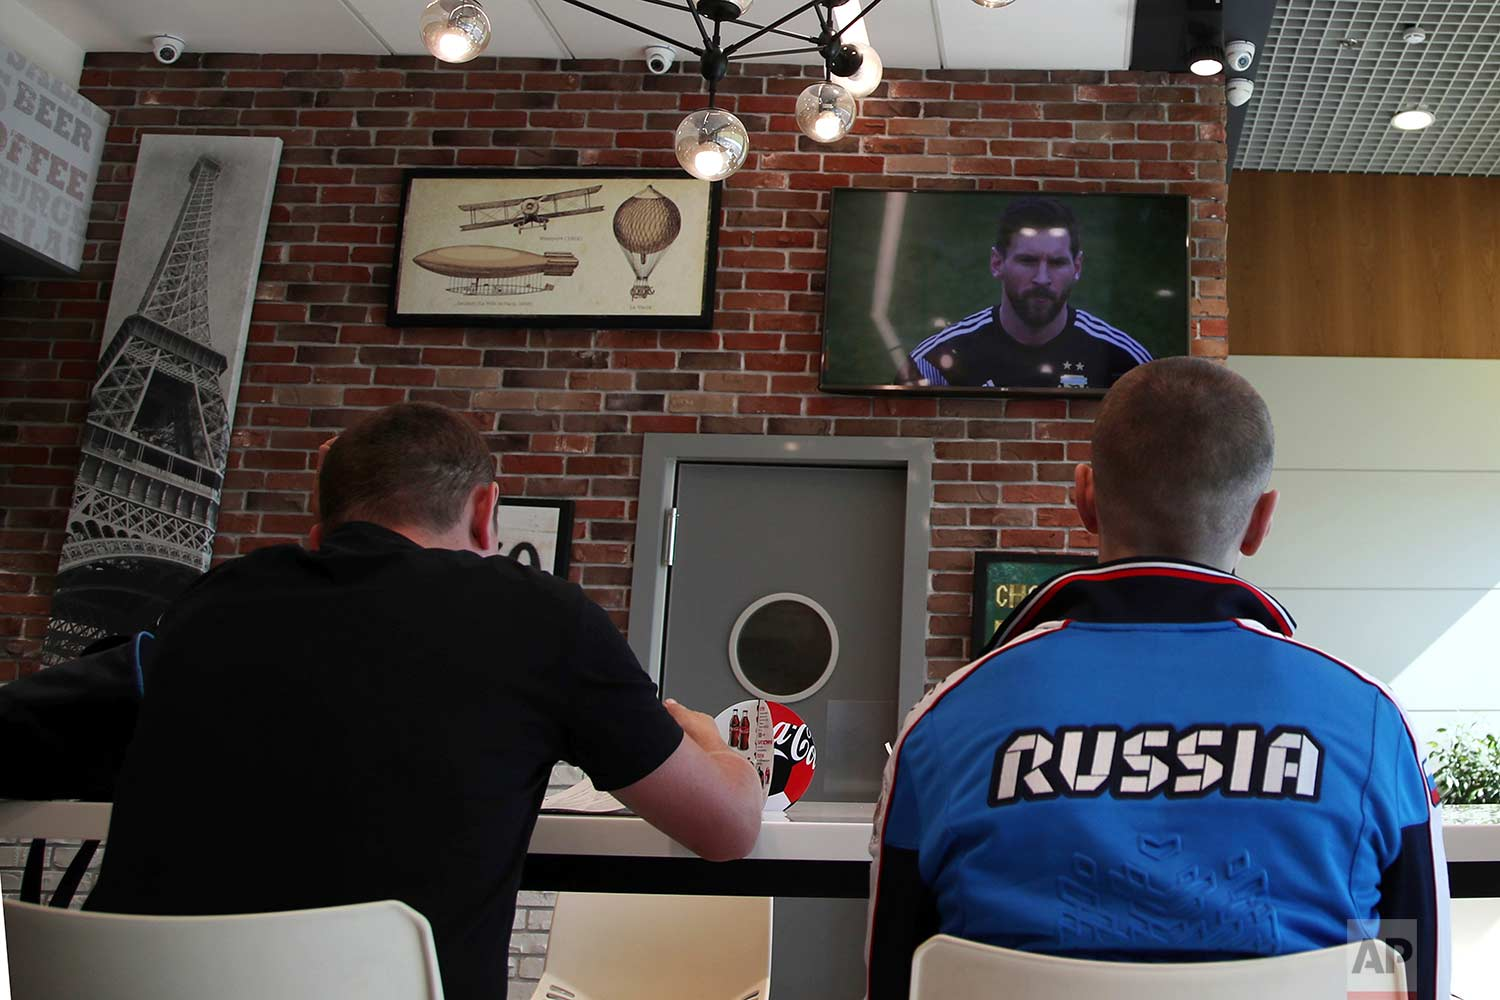 In this Saturday, June 16, 2018 photo, the TV shows the soccer star Lionel Messi during a match between Argentina and Iceland, as Russian fans watch the game, at Vnukovo International Airport, in Moscow, Russia.  (AP Photo/Thanassis Stavrakis)